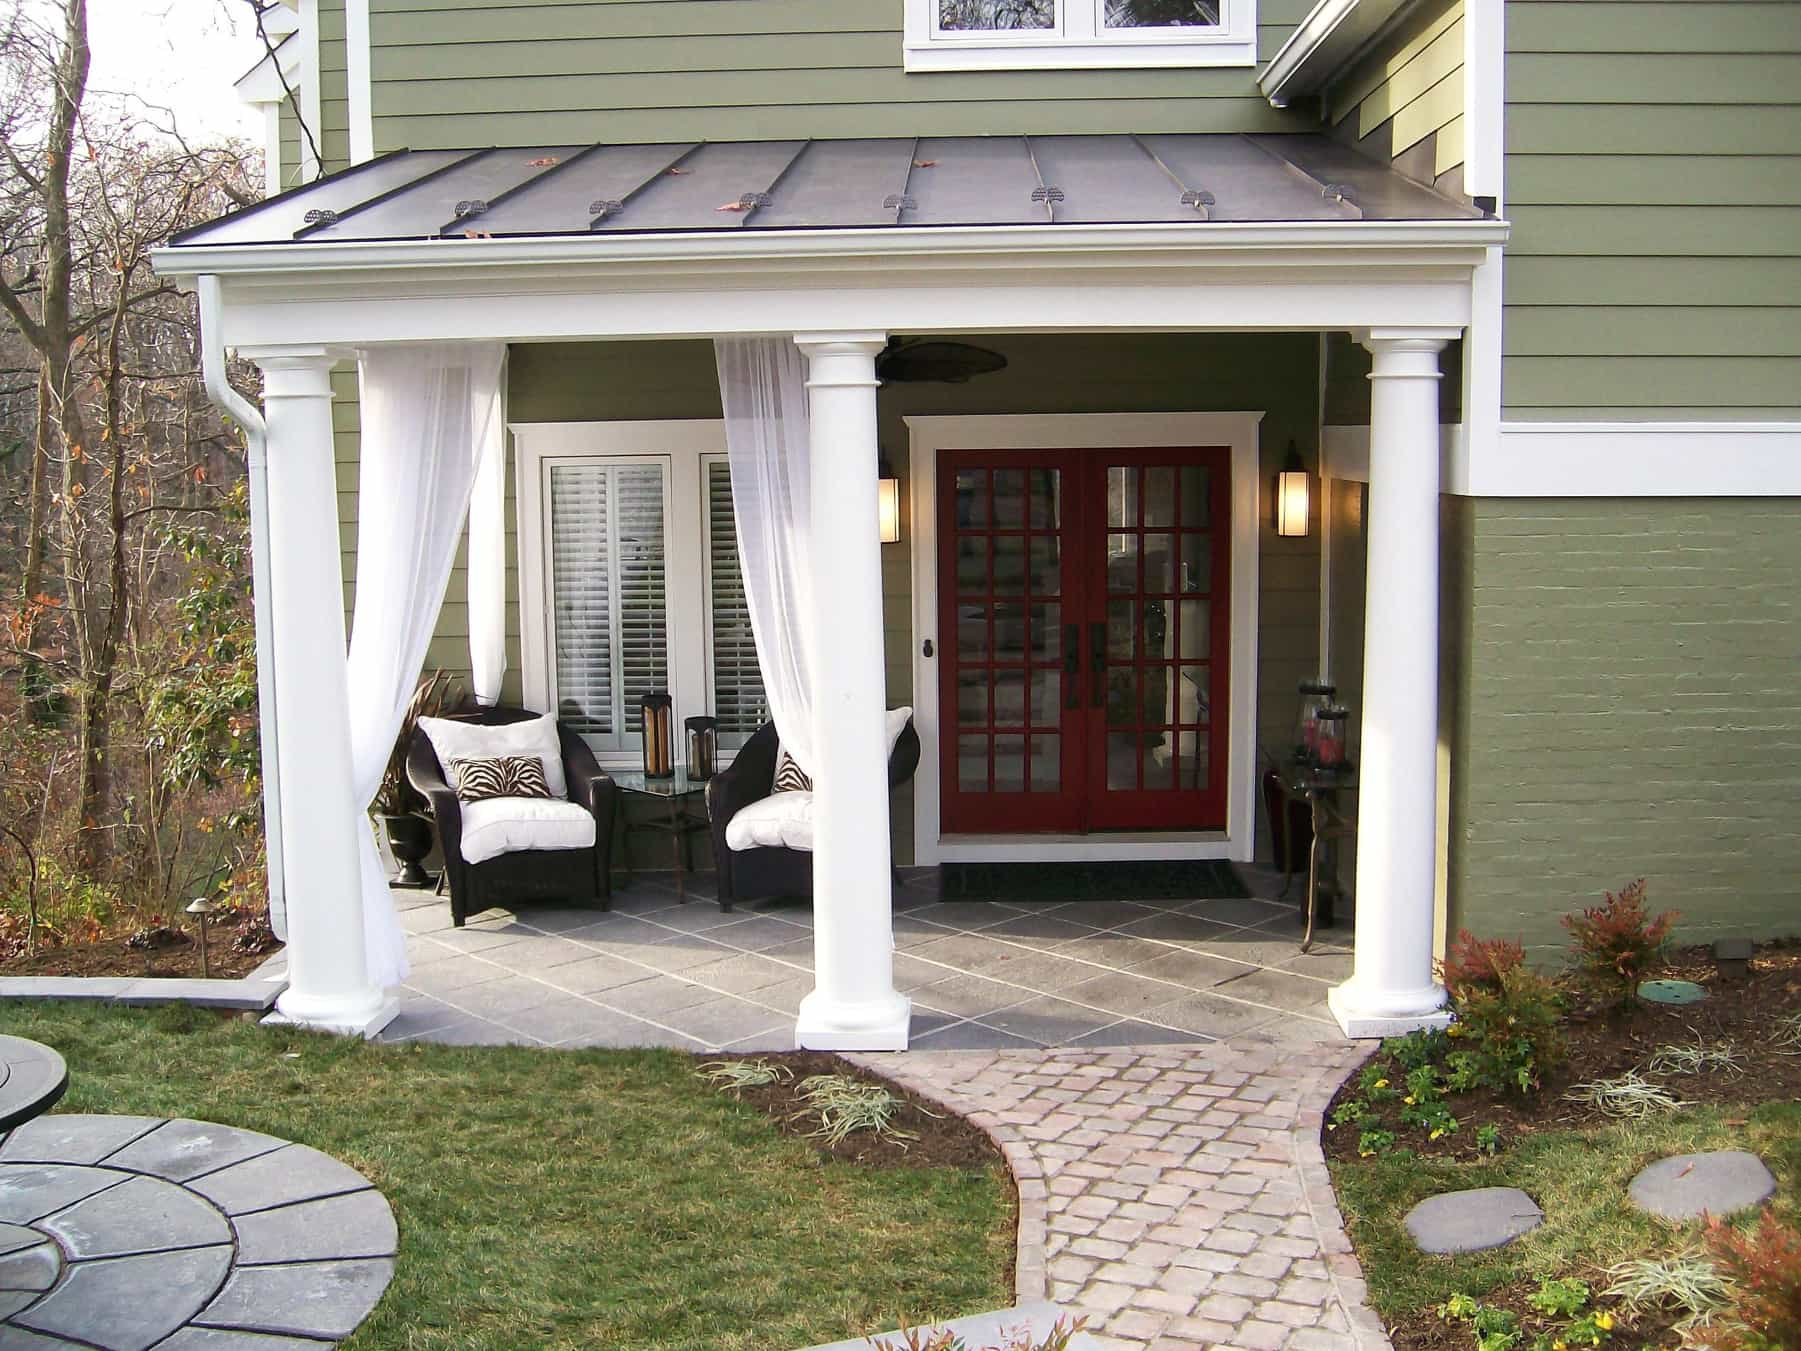 Featured Image of Colonial Home With Green Siding And Red French Doors